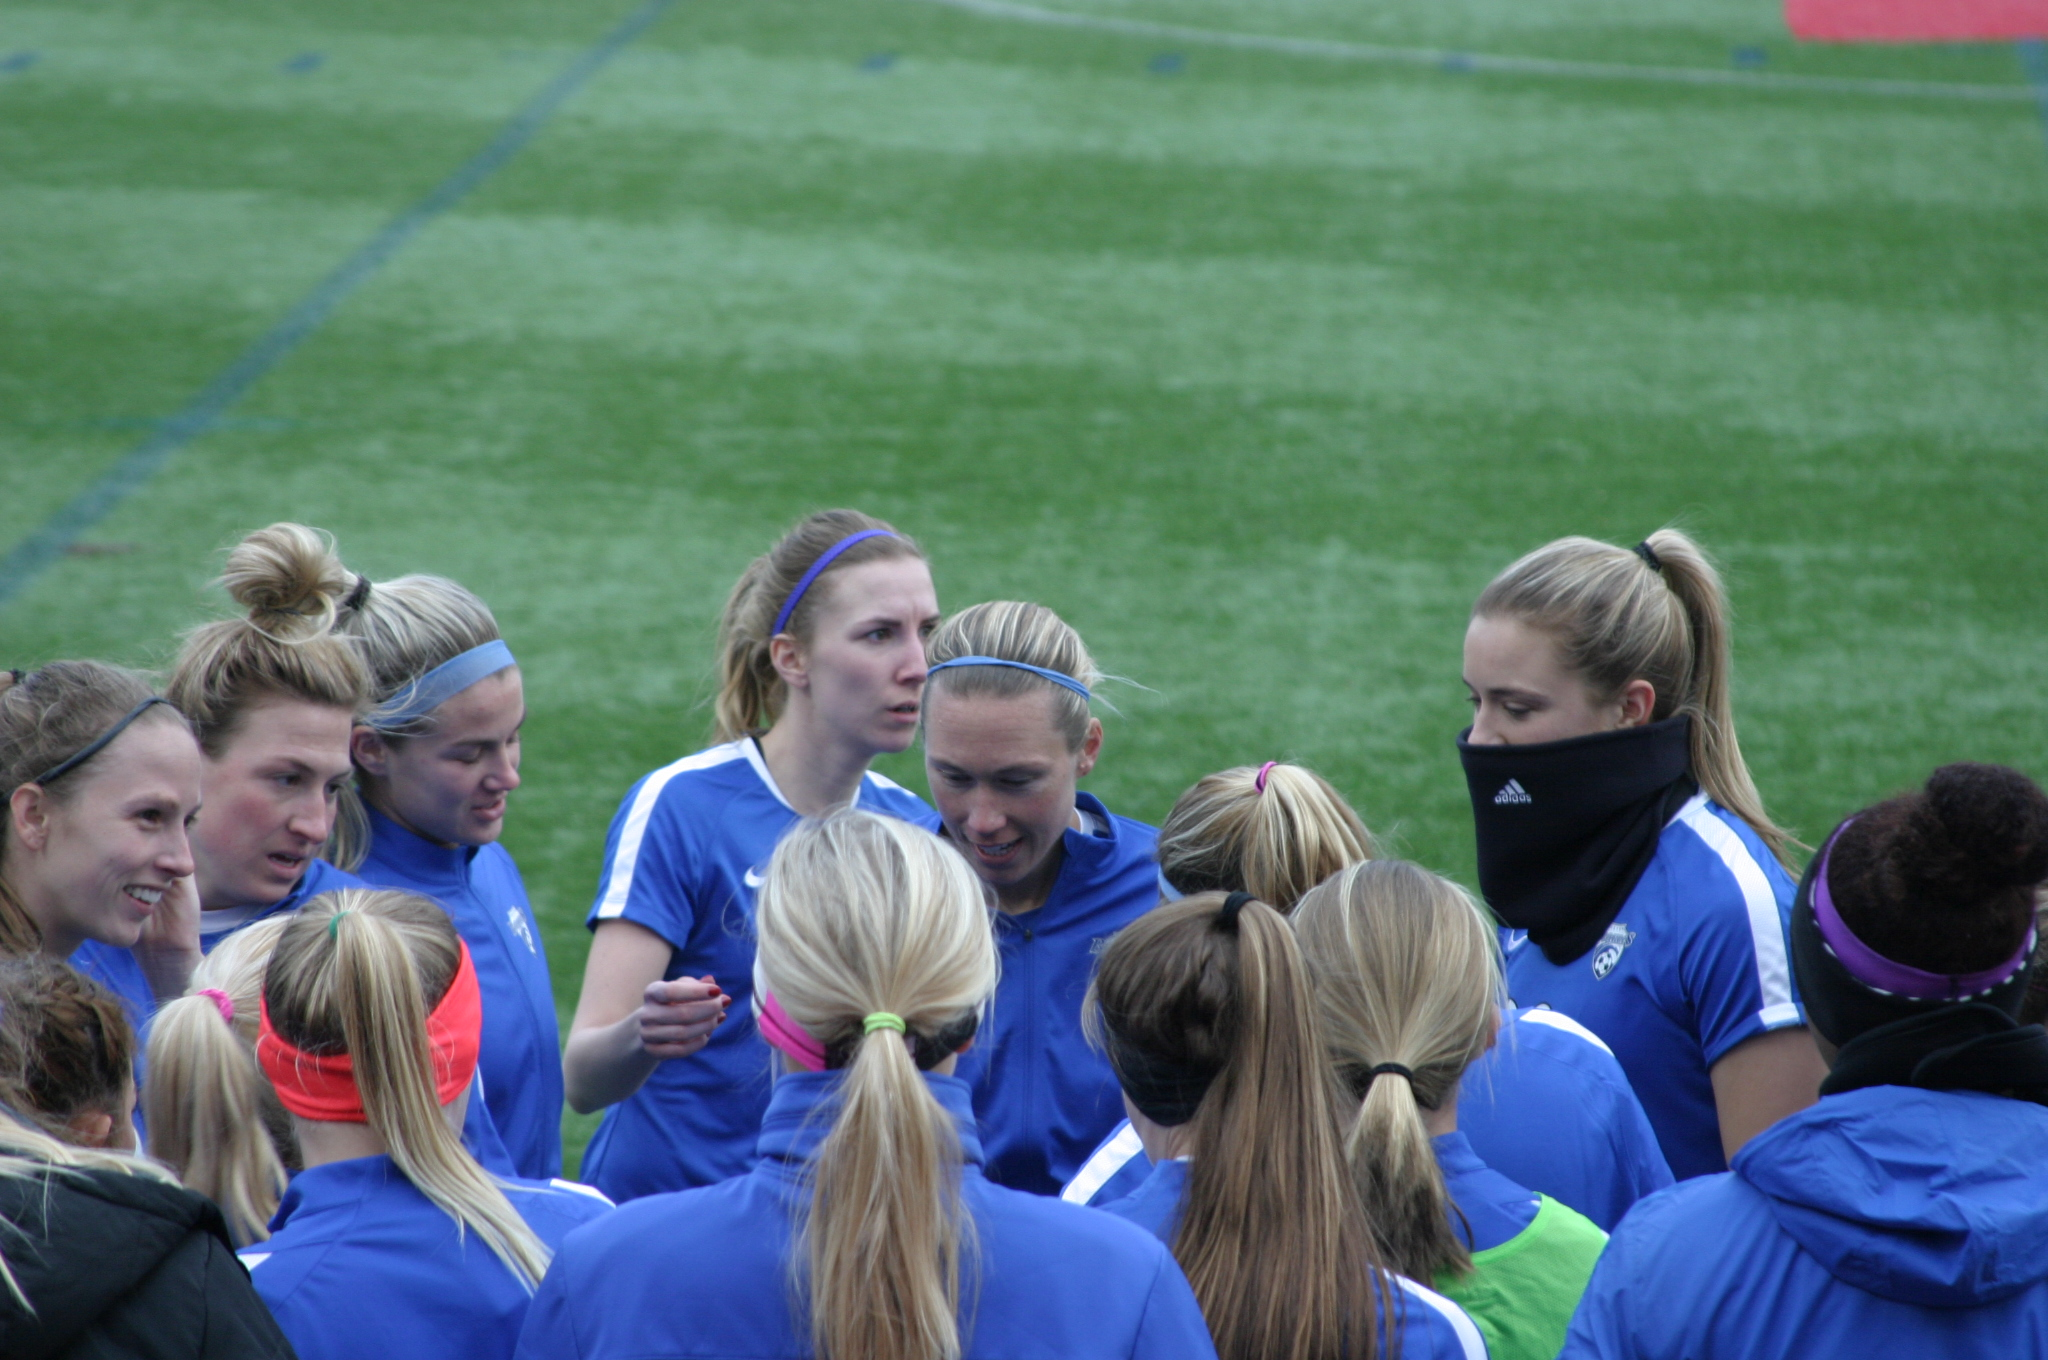 USWNT Defender Whitney Engen assembles the team before the opening whistle.